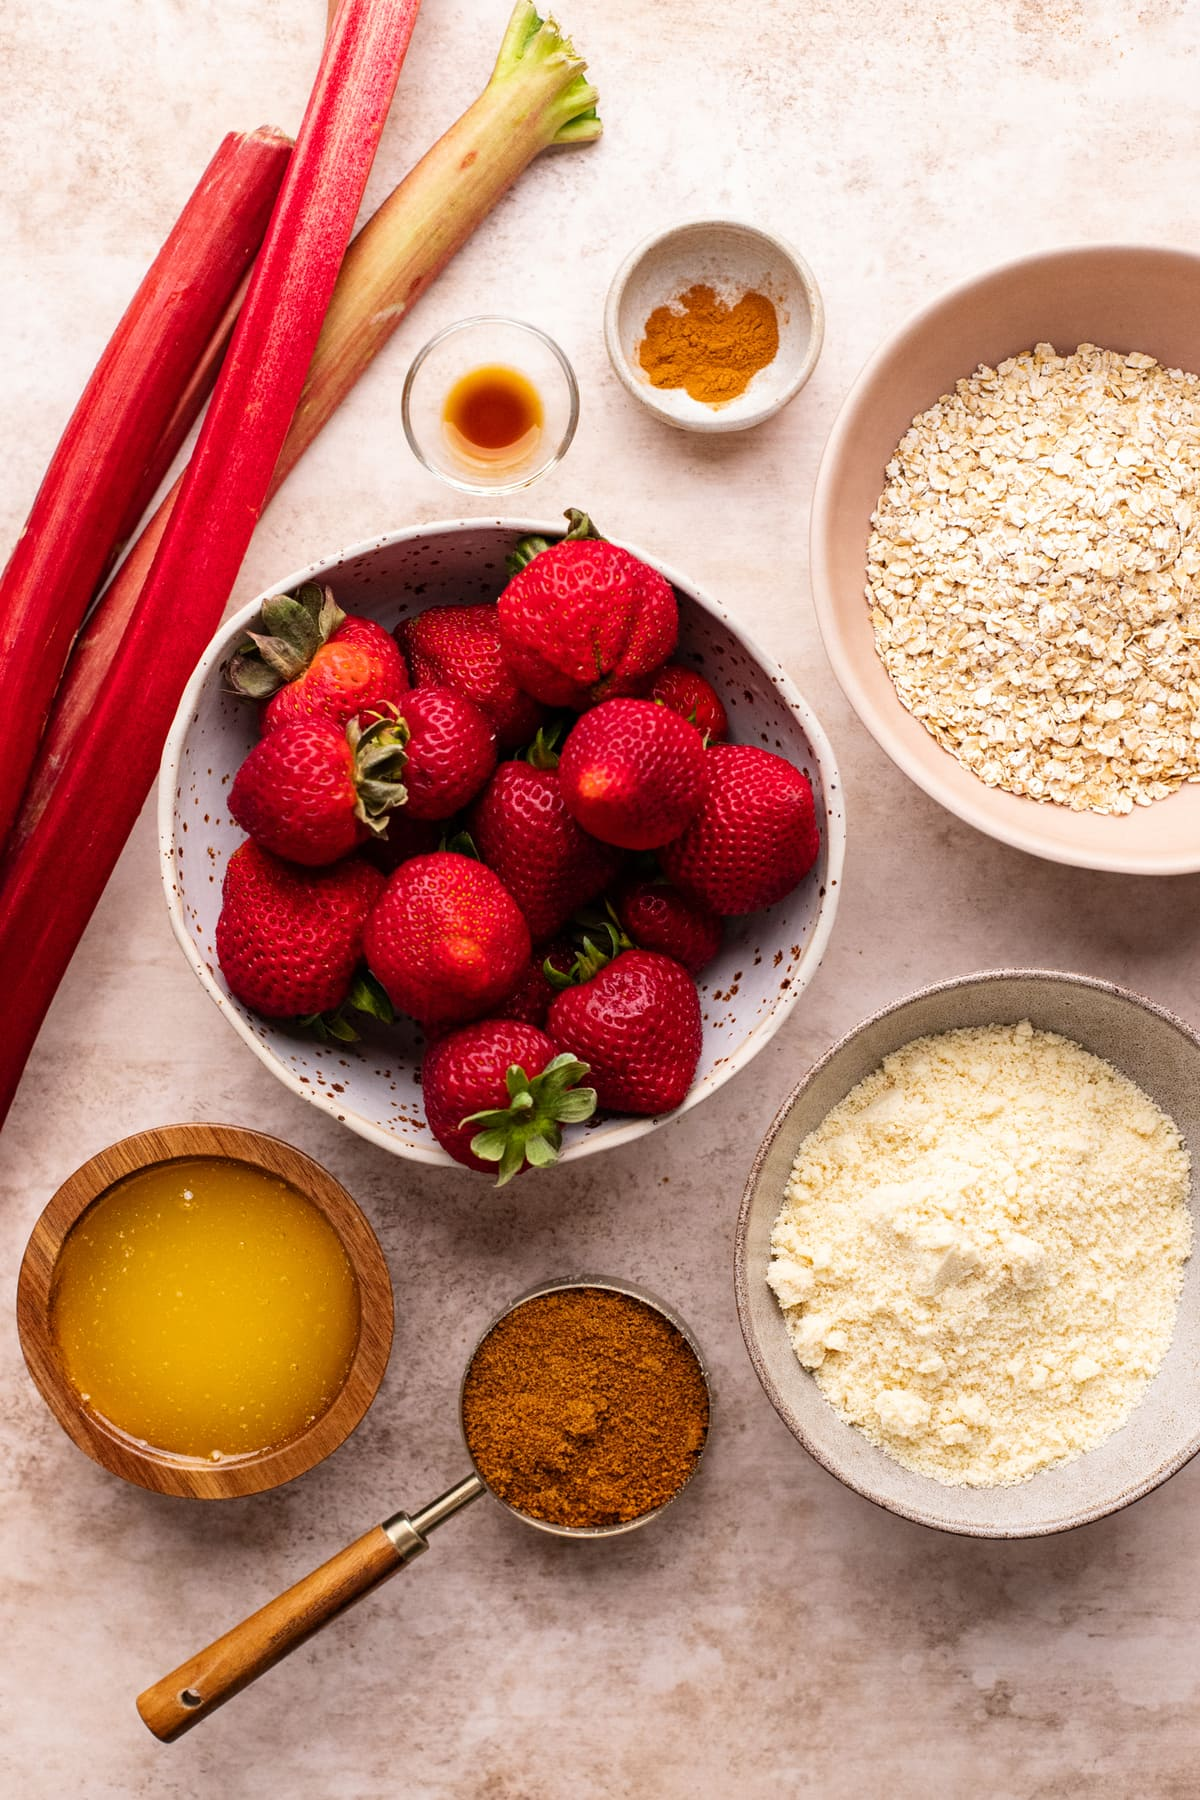 ingredients for gluten free strawberry rhubarb crisp arranged on a tan colored background.